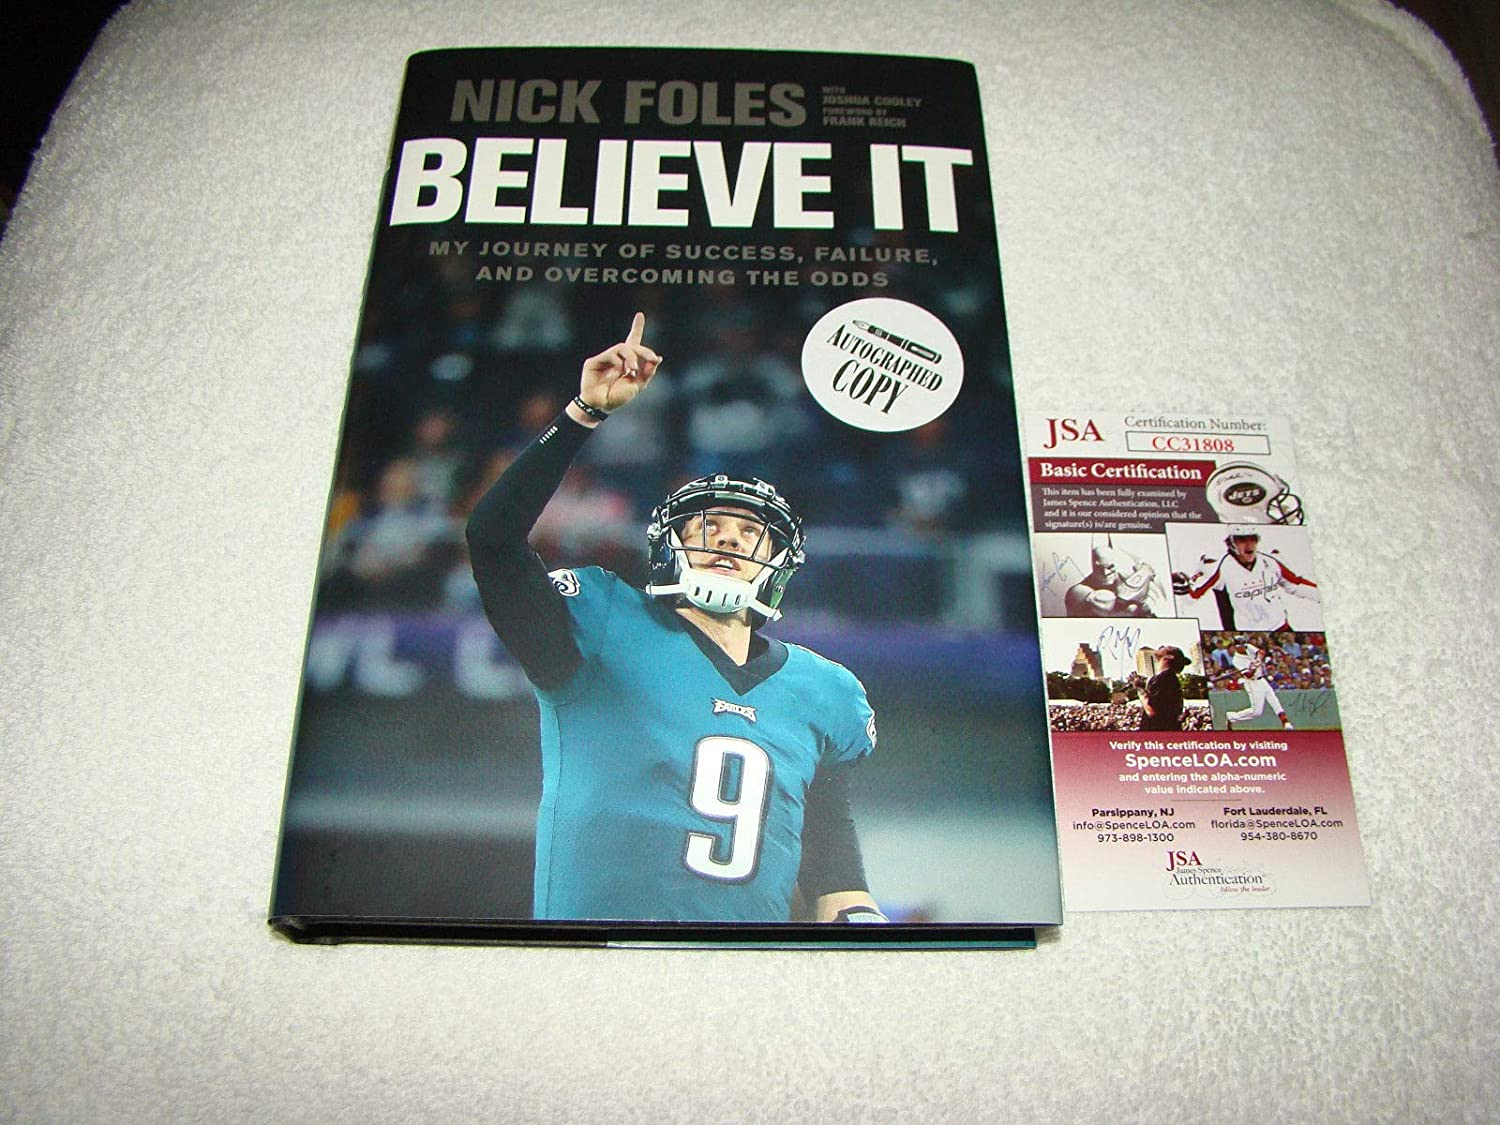 d373f416810 Autographs-Original Nick Foles Signed Book Believe It BAS Beckett COA Philadelphia  Eagles SB LII MVP